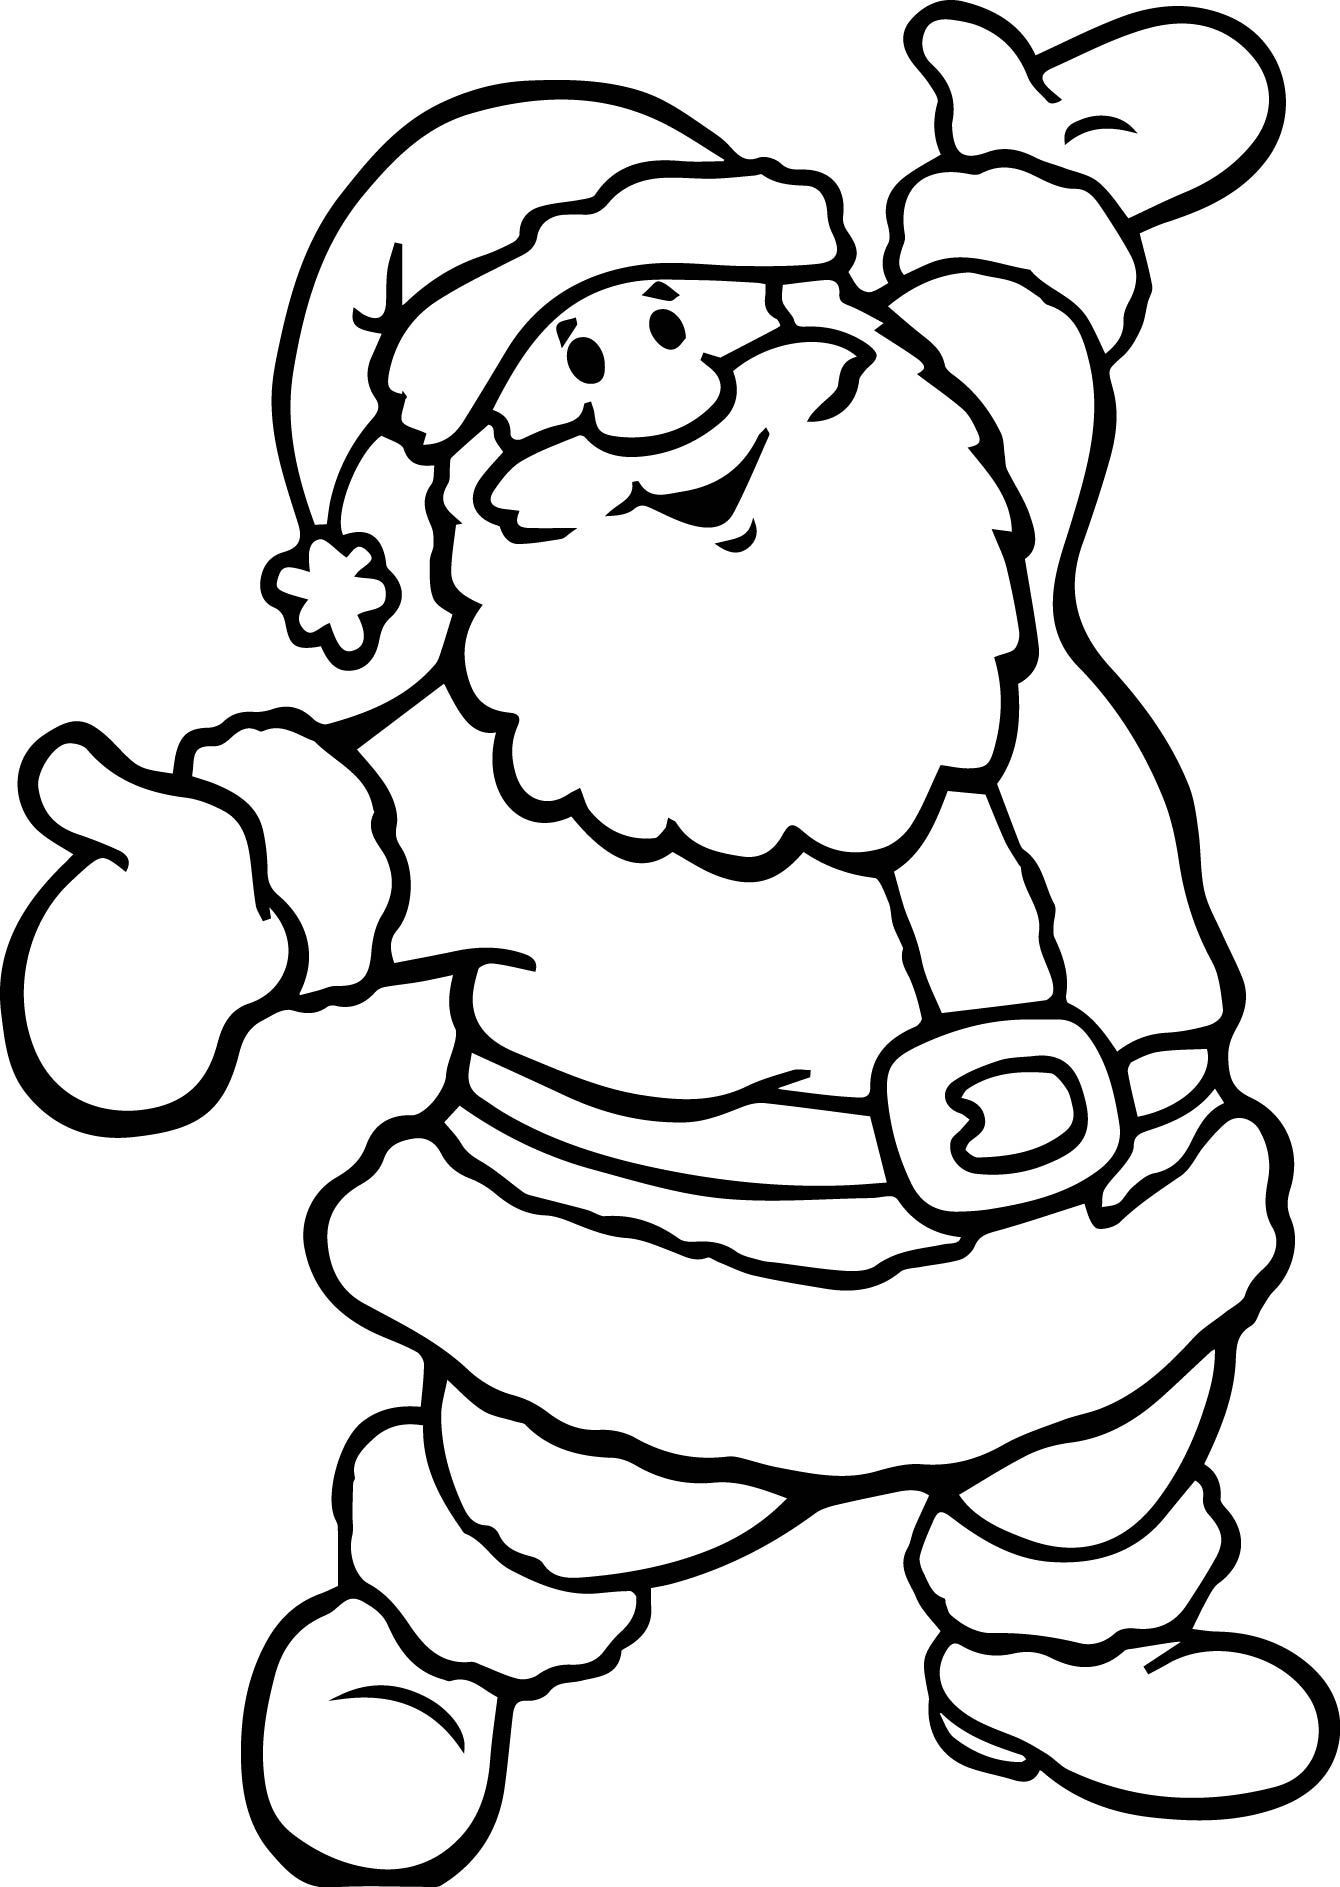 Cool Santa Claus Printable Coloring Pages Have Fun Coloring The Grinch Colorin Santa Coloring Pages Christmas Coloring Pages Printable Christmas Coloring Pages